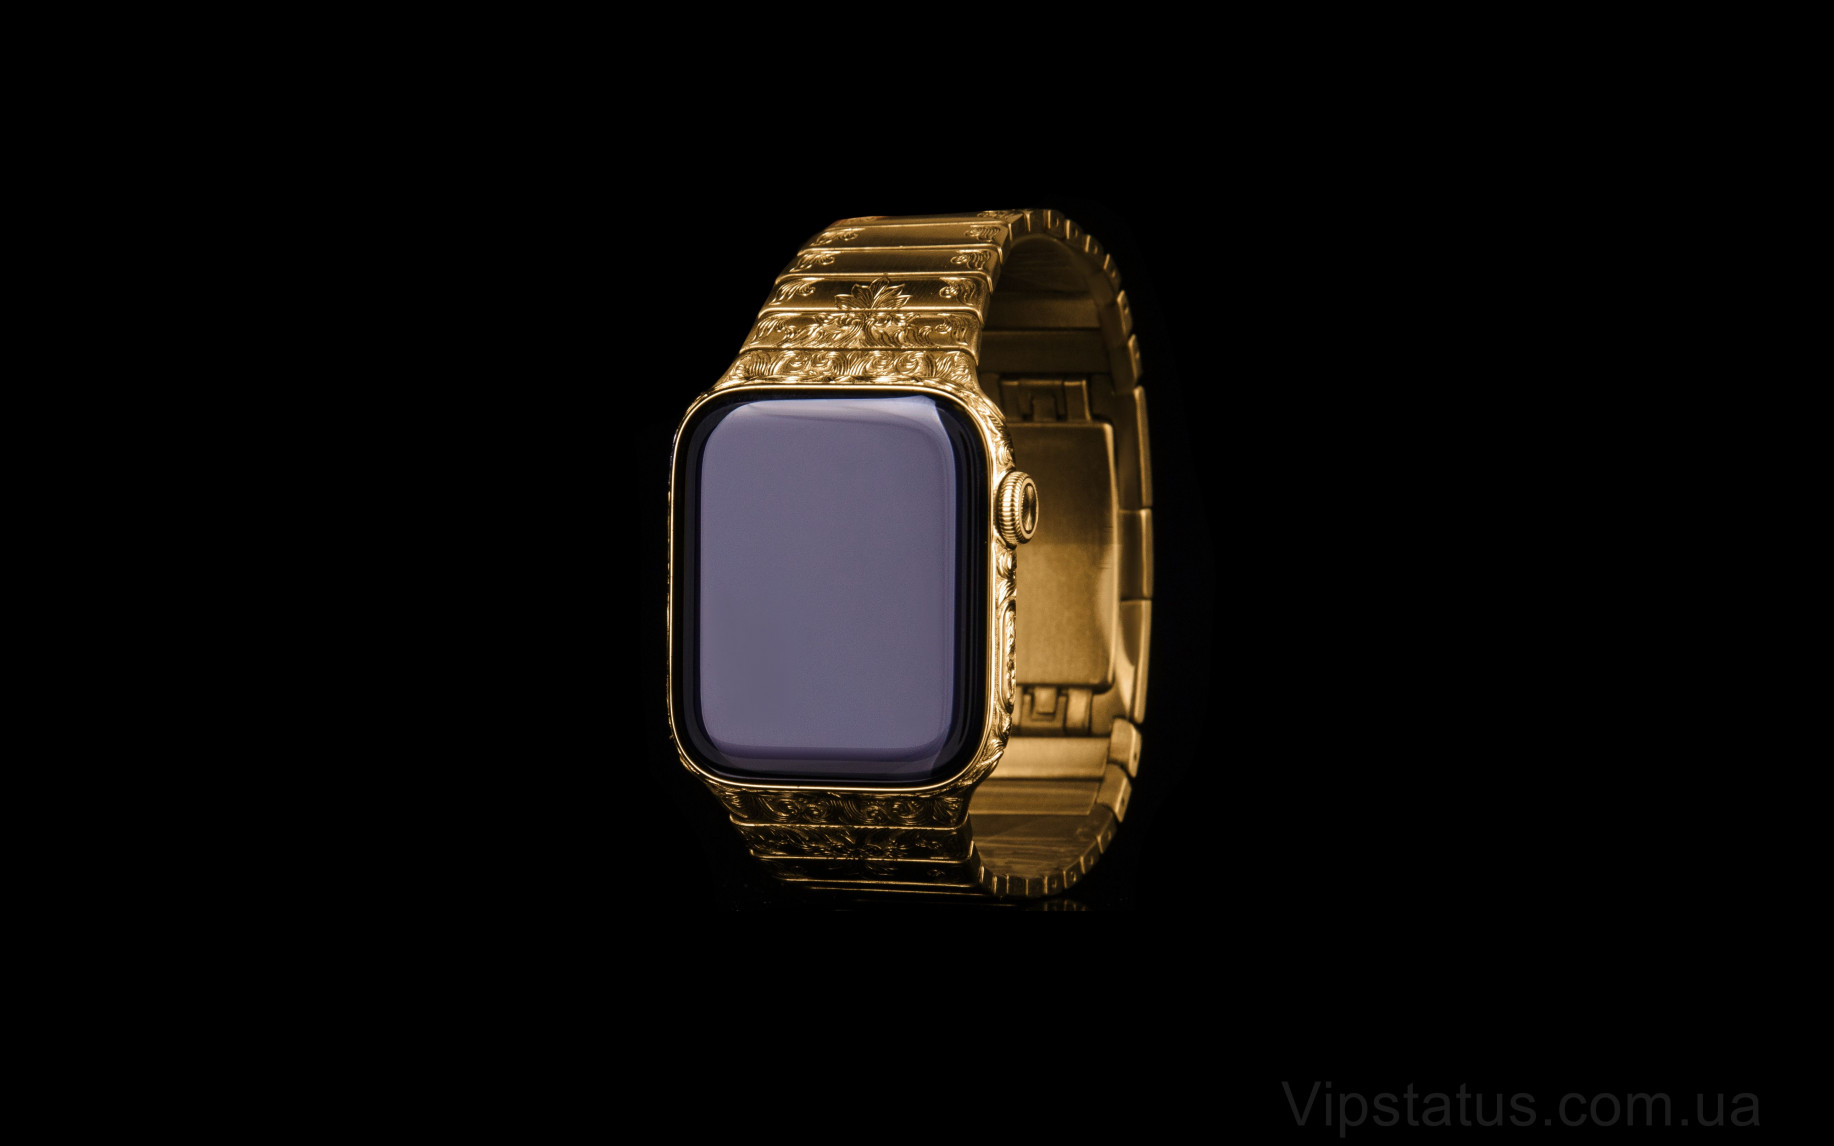 Элитный Gold Star Apple Watch 5 Sapphire Gold Star Apple Watch 5 Sapphire изображение 1